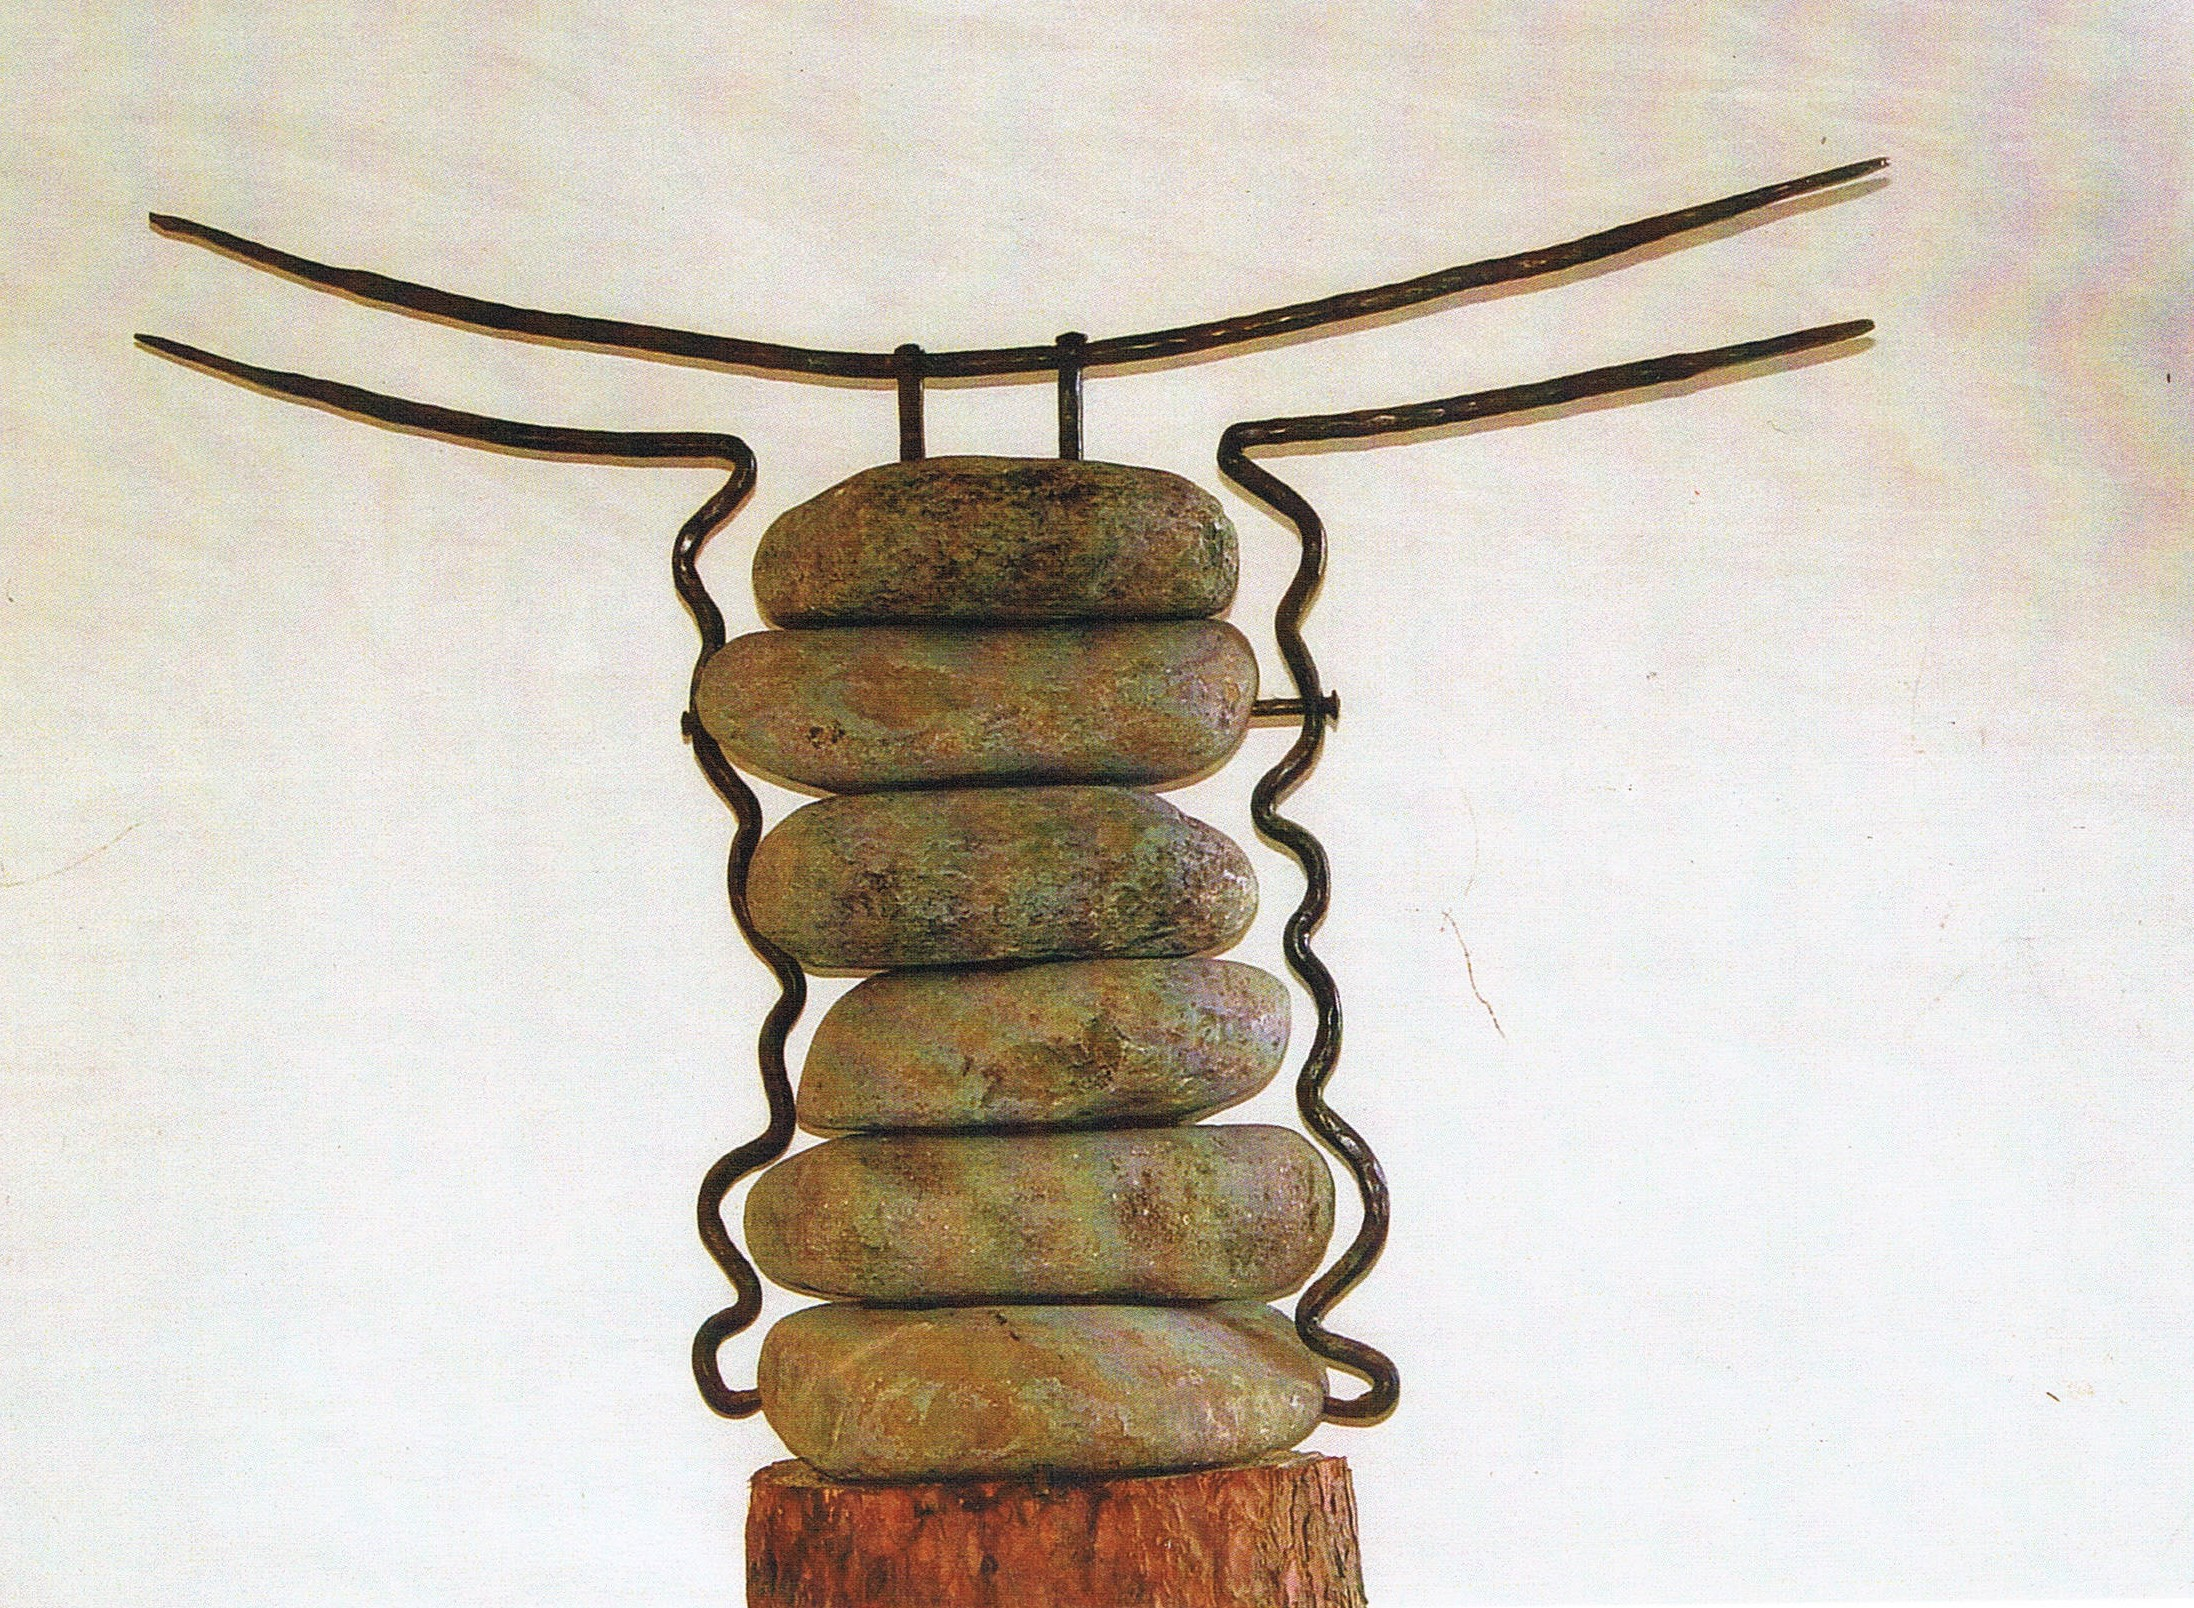 'Abstract' – Sculpture crafted of Forged Iron & River Stones